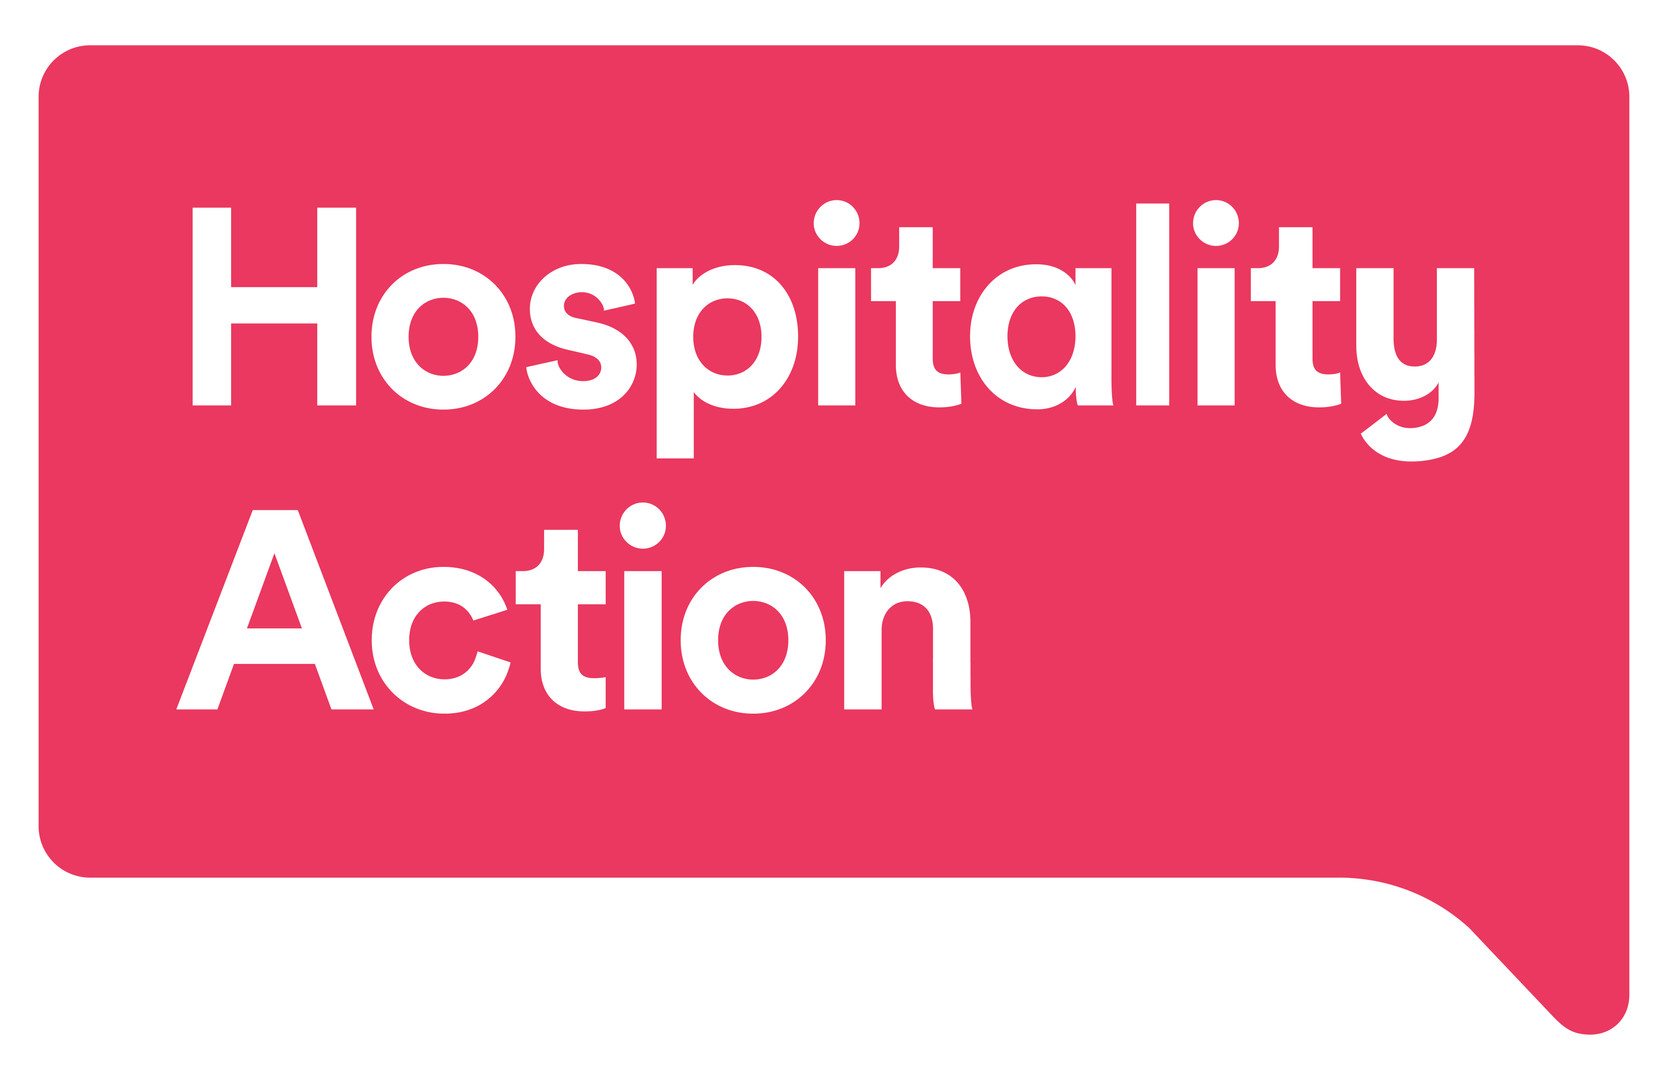 Hospitality Action